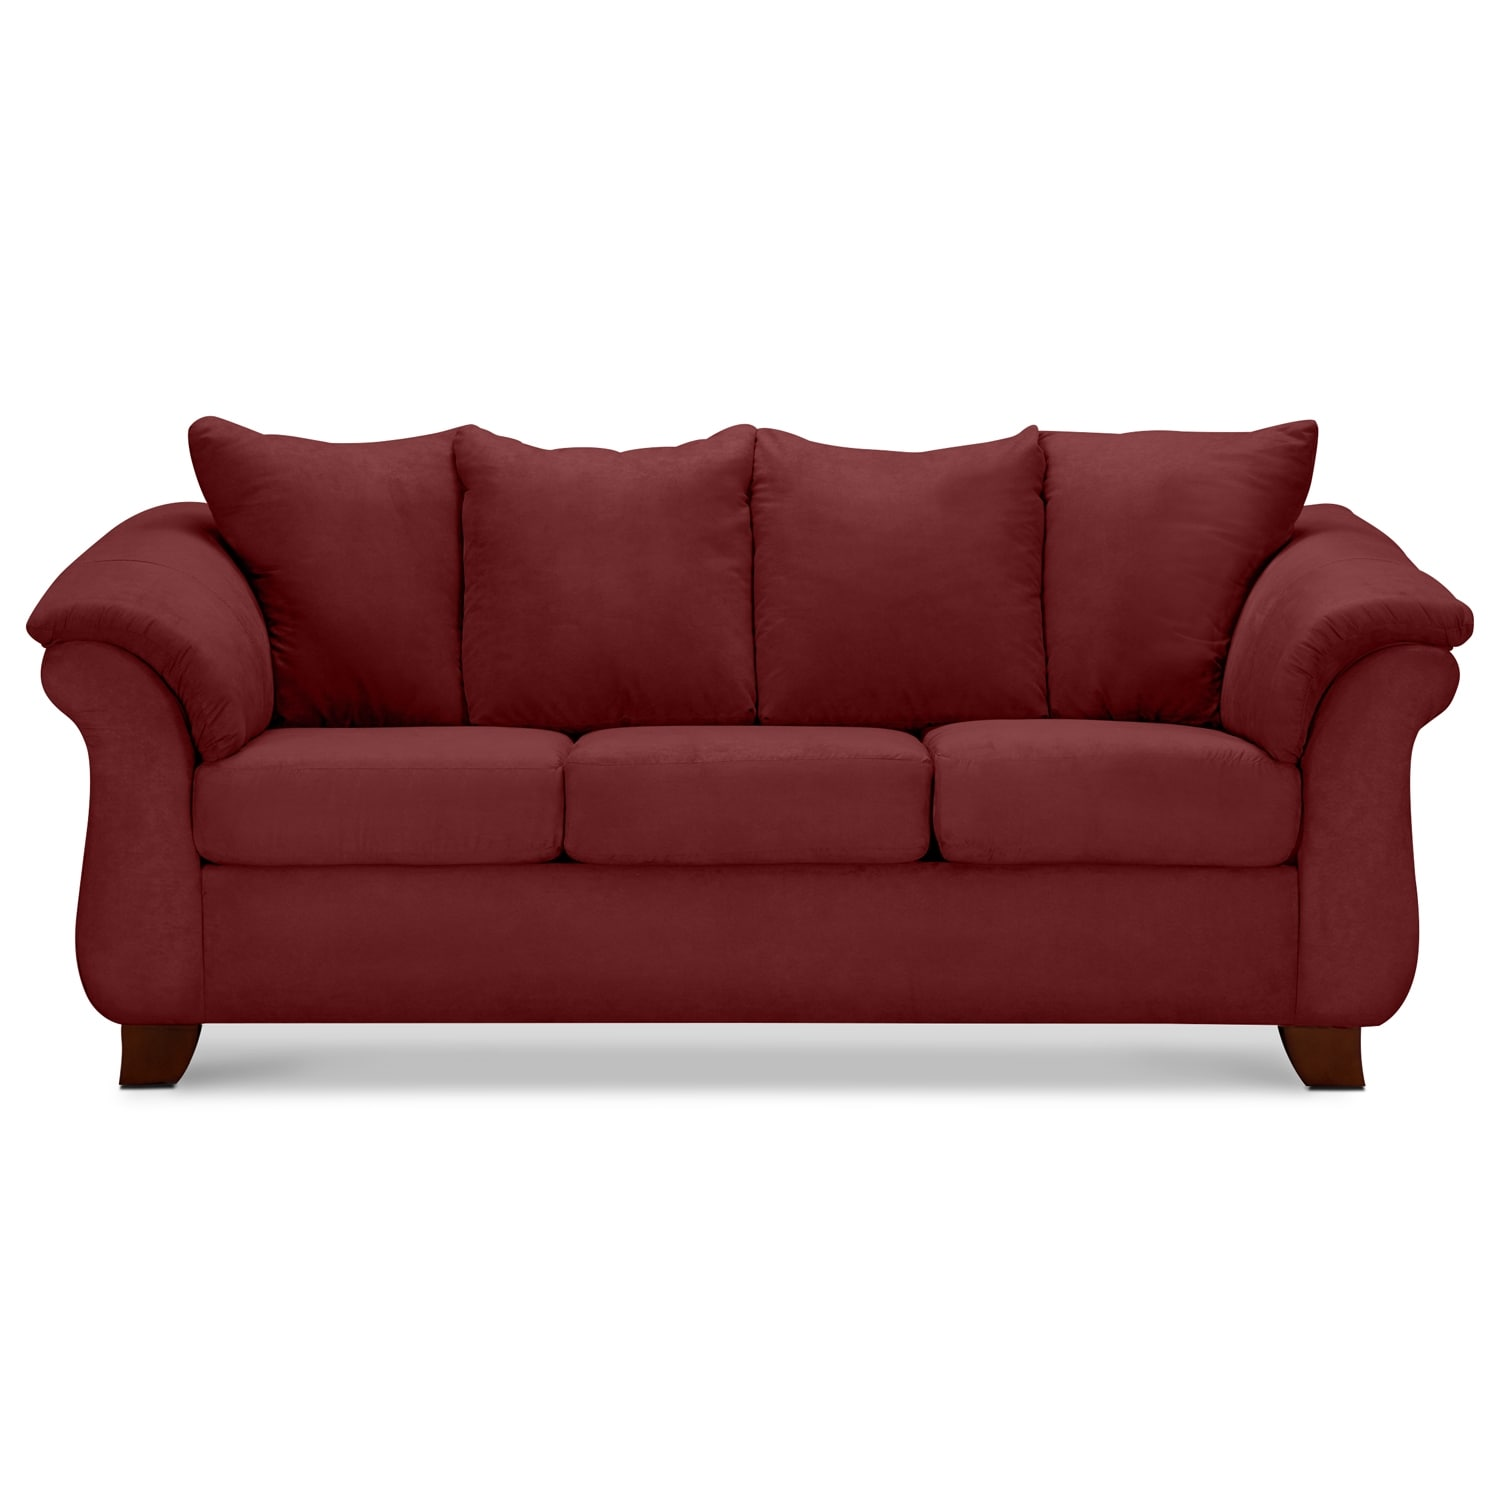 Adrian red upholstery sofa value city furniture for Sofa bed value city furniture